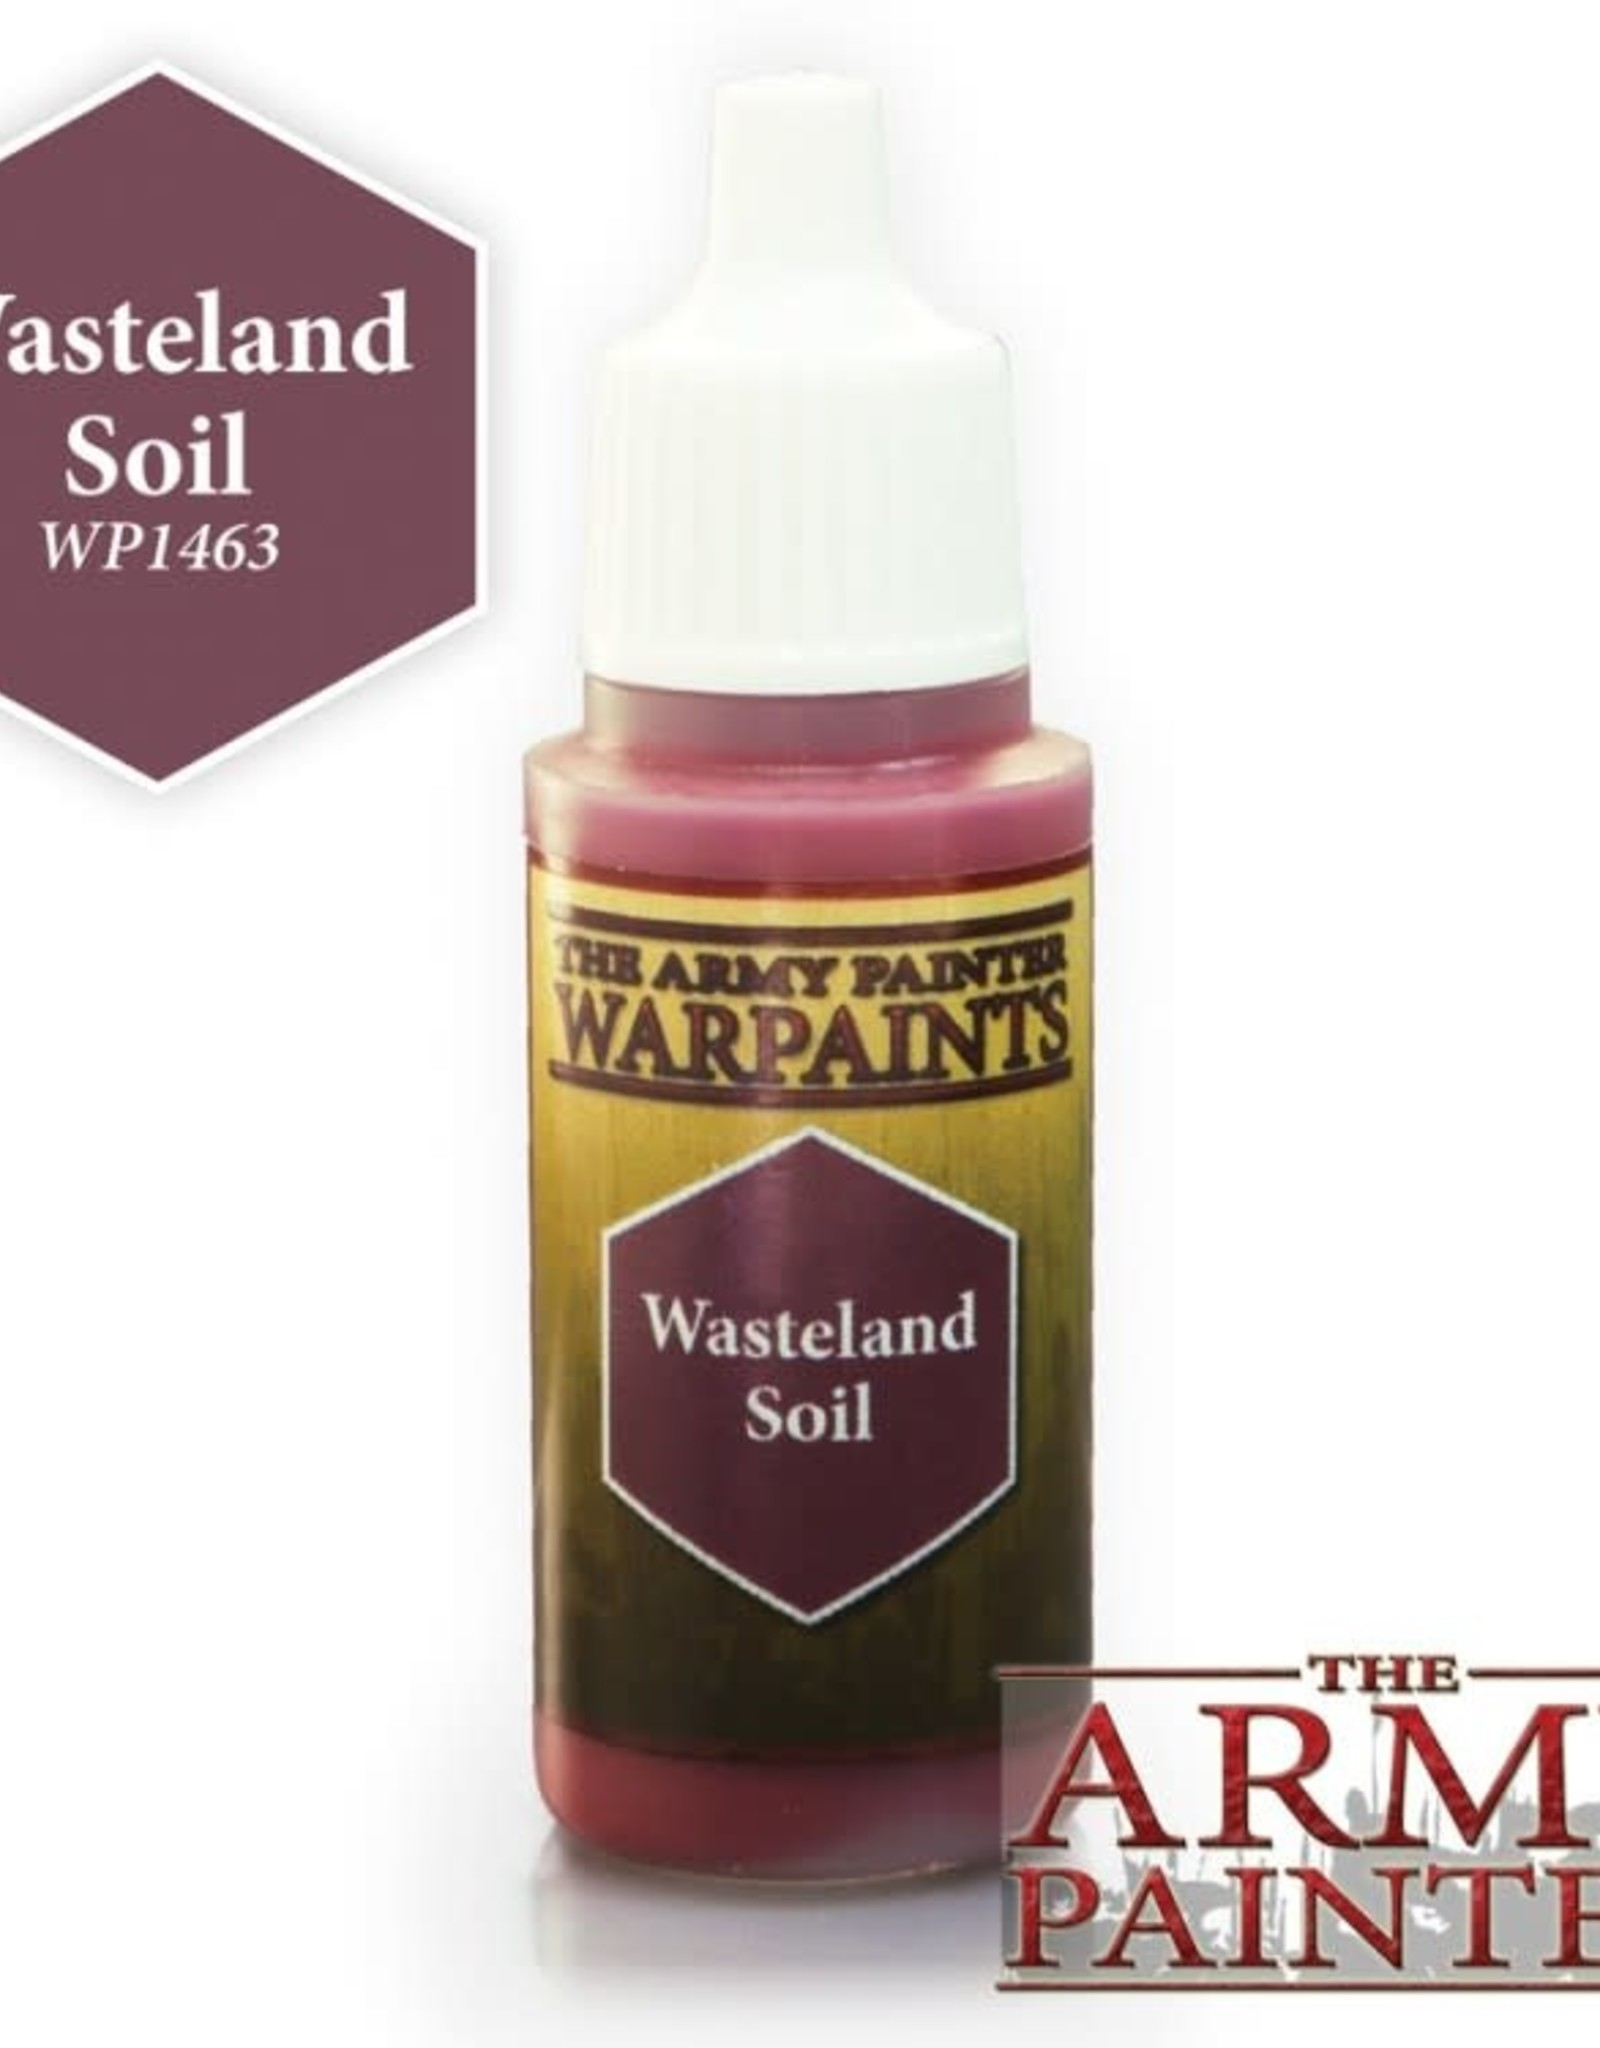 The Army Painter Warpaints - Wasteland Soil